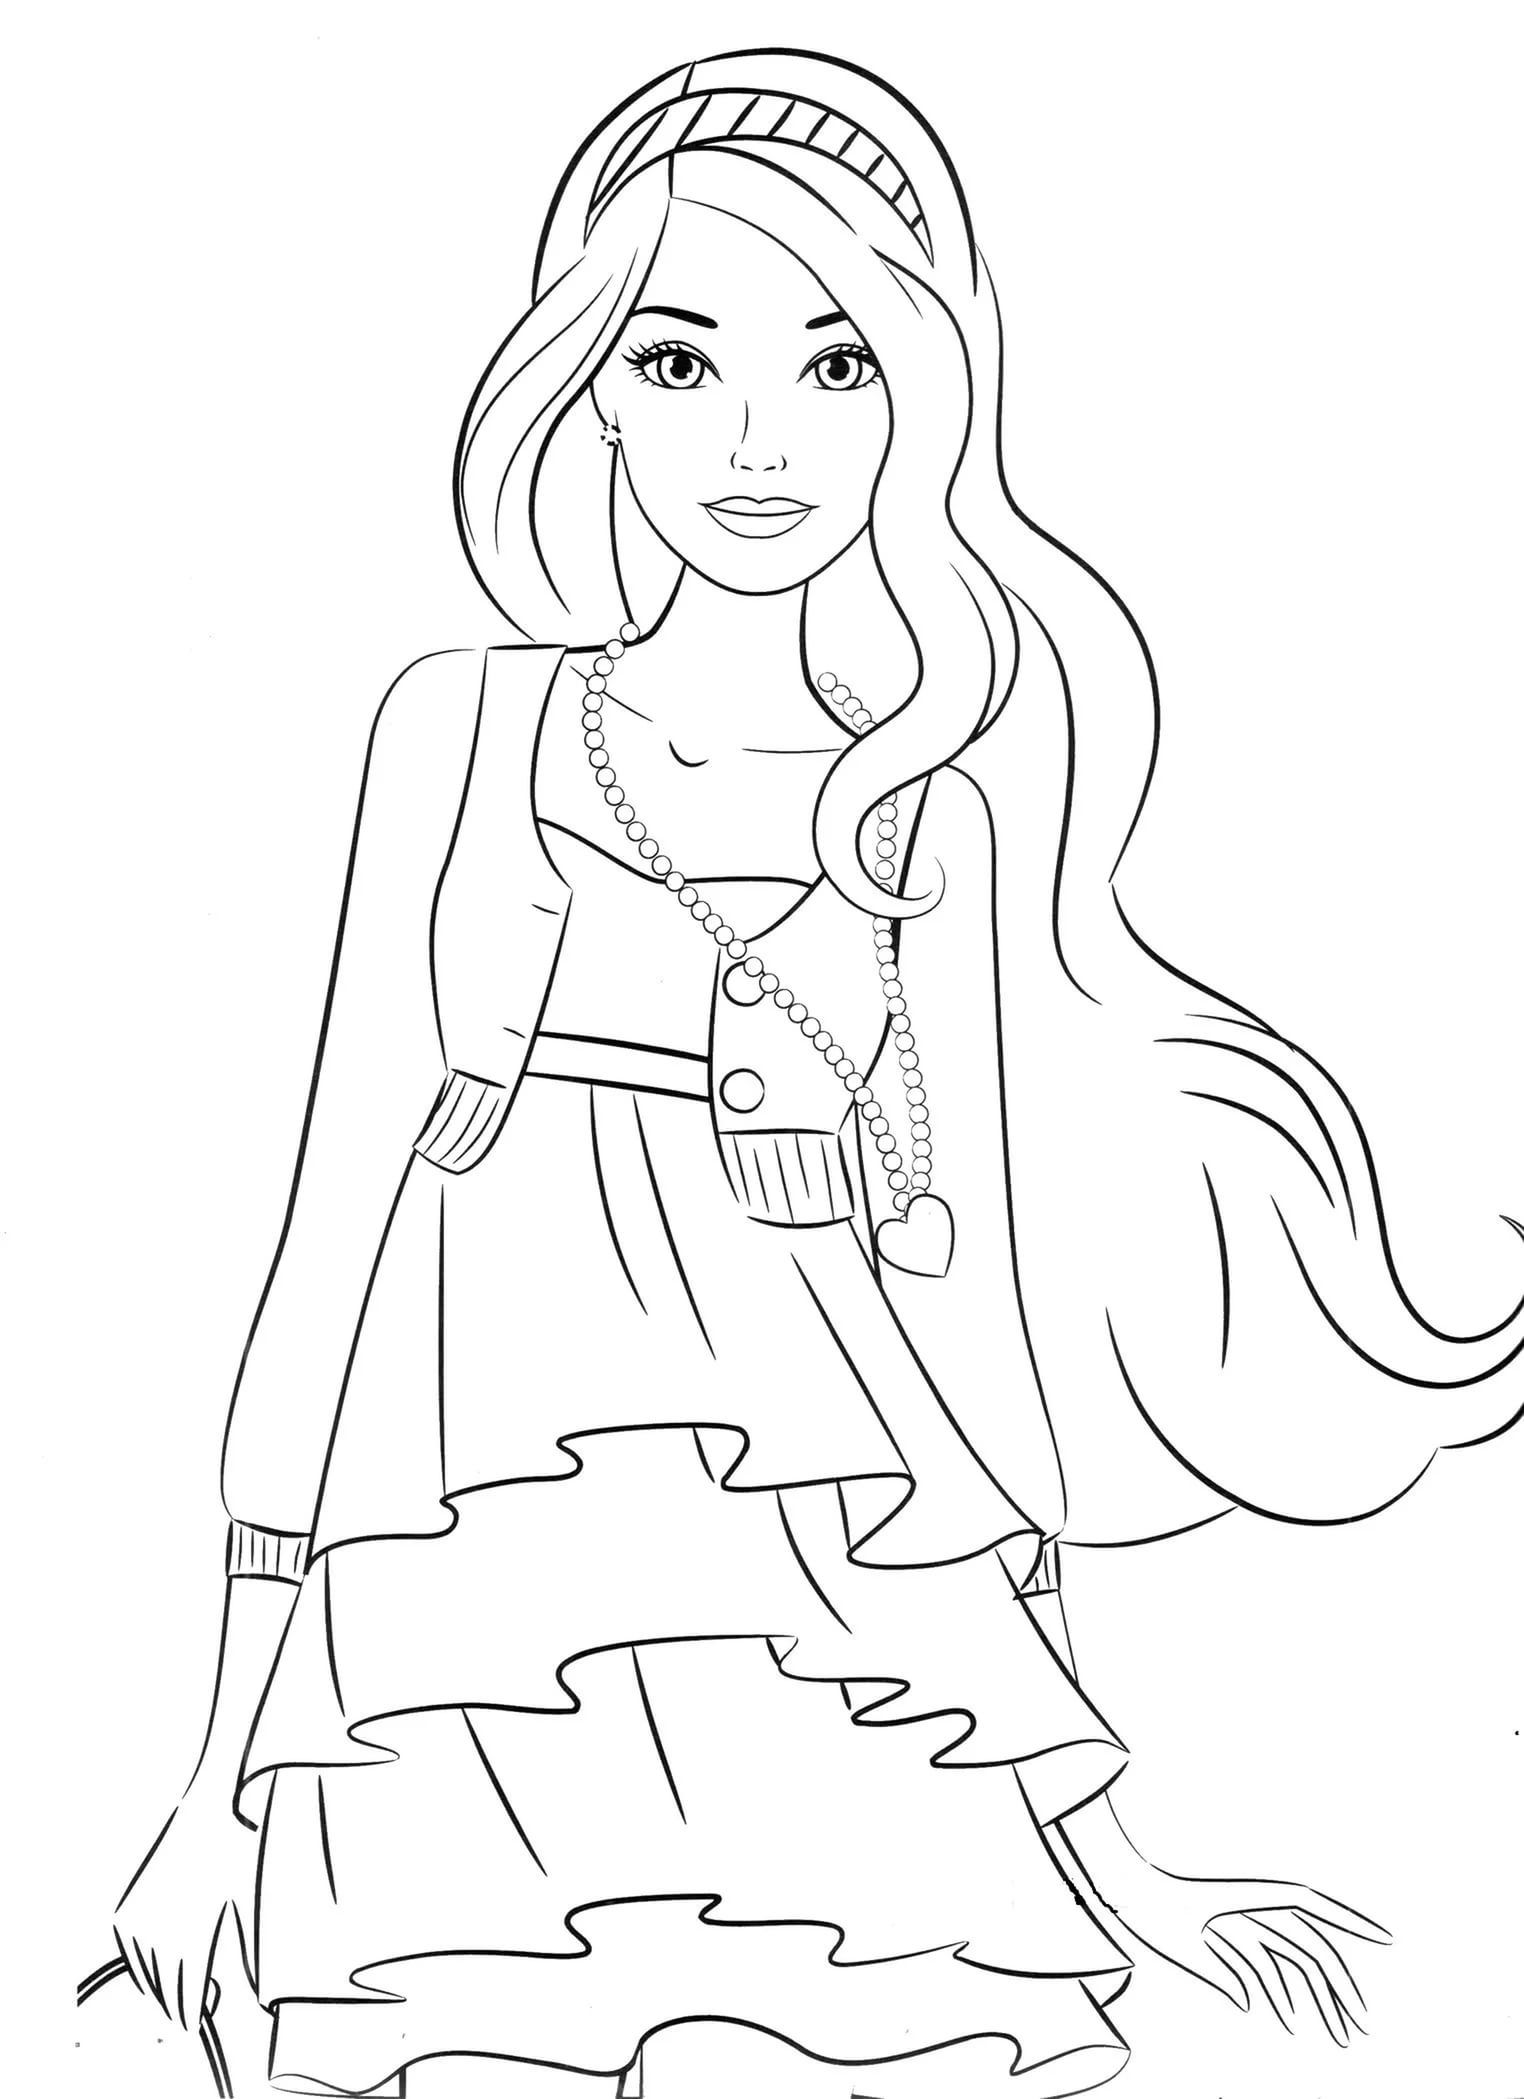 Printable Coloring Pages For 9 Year Olds Barbie Coloring Pages